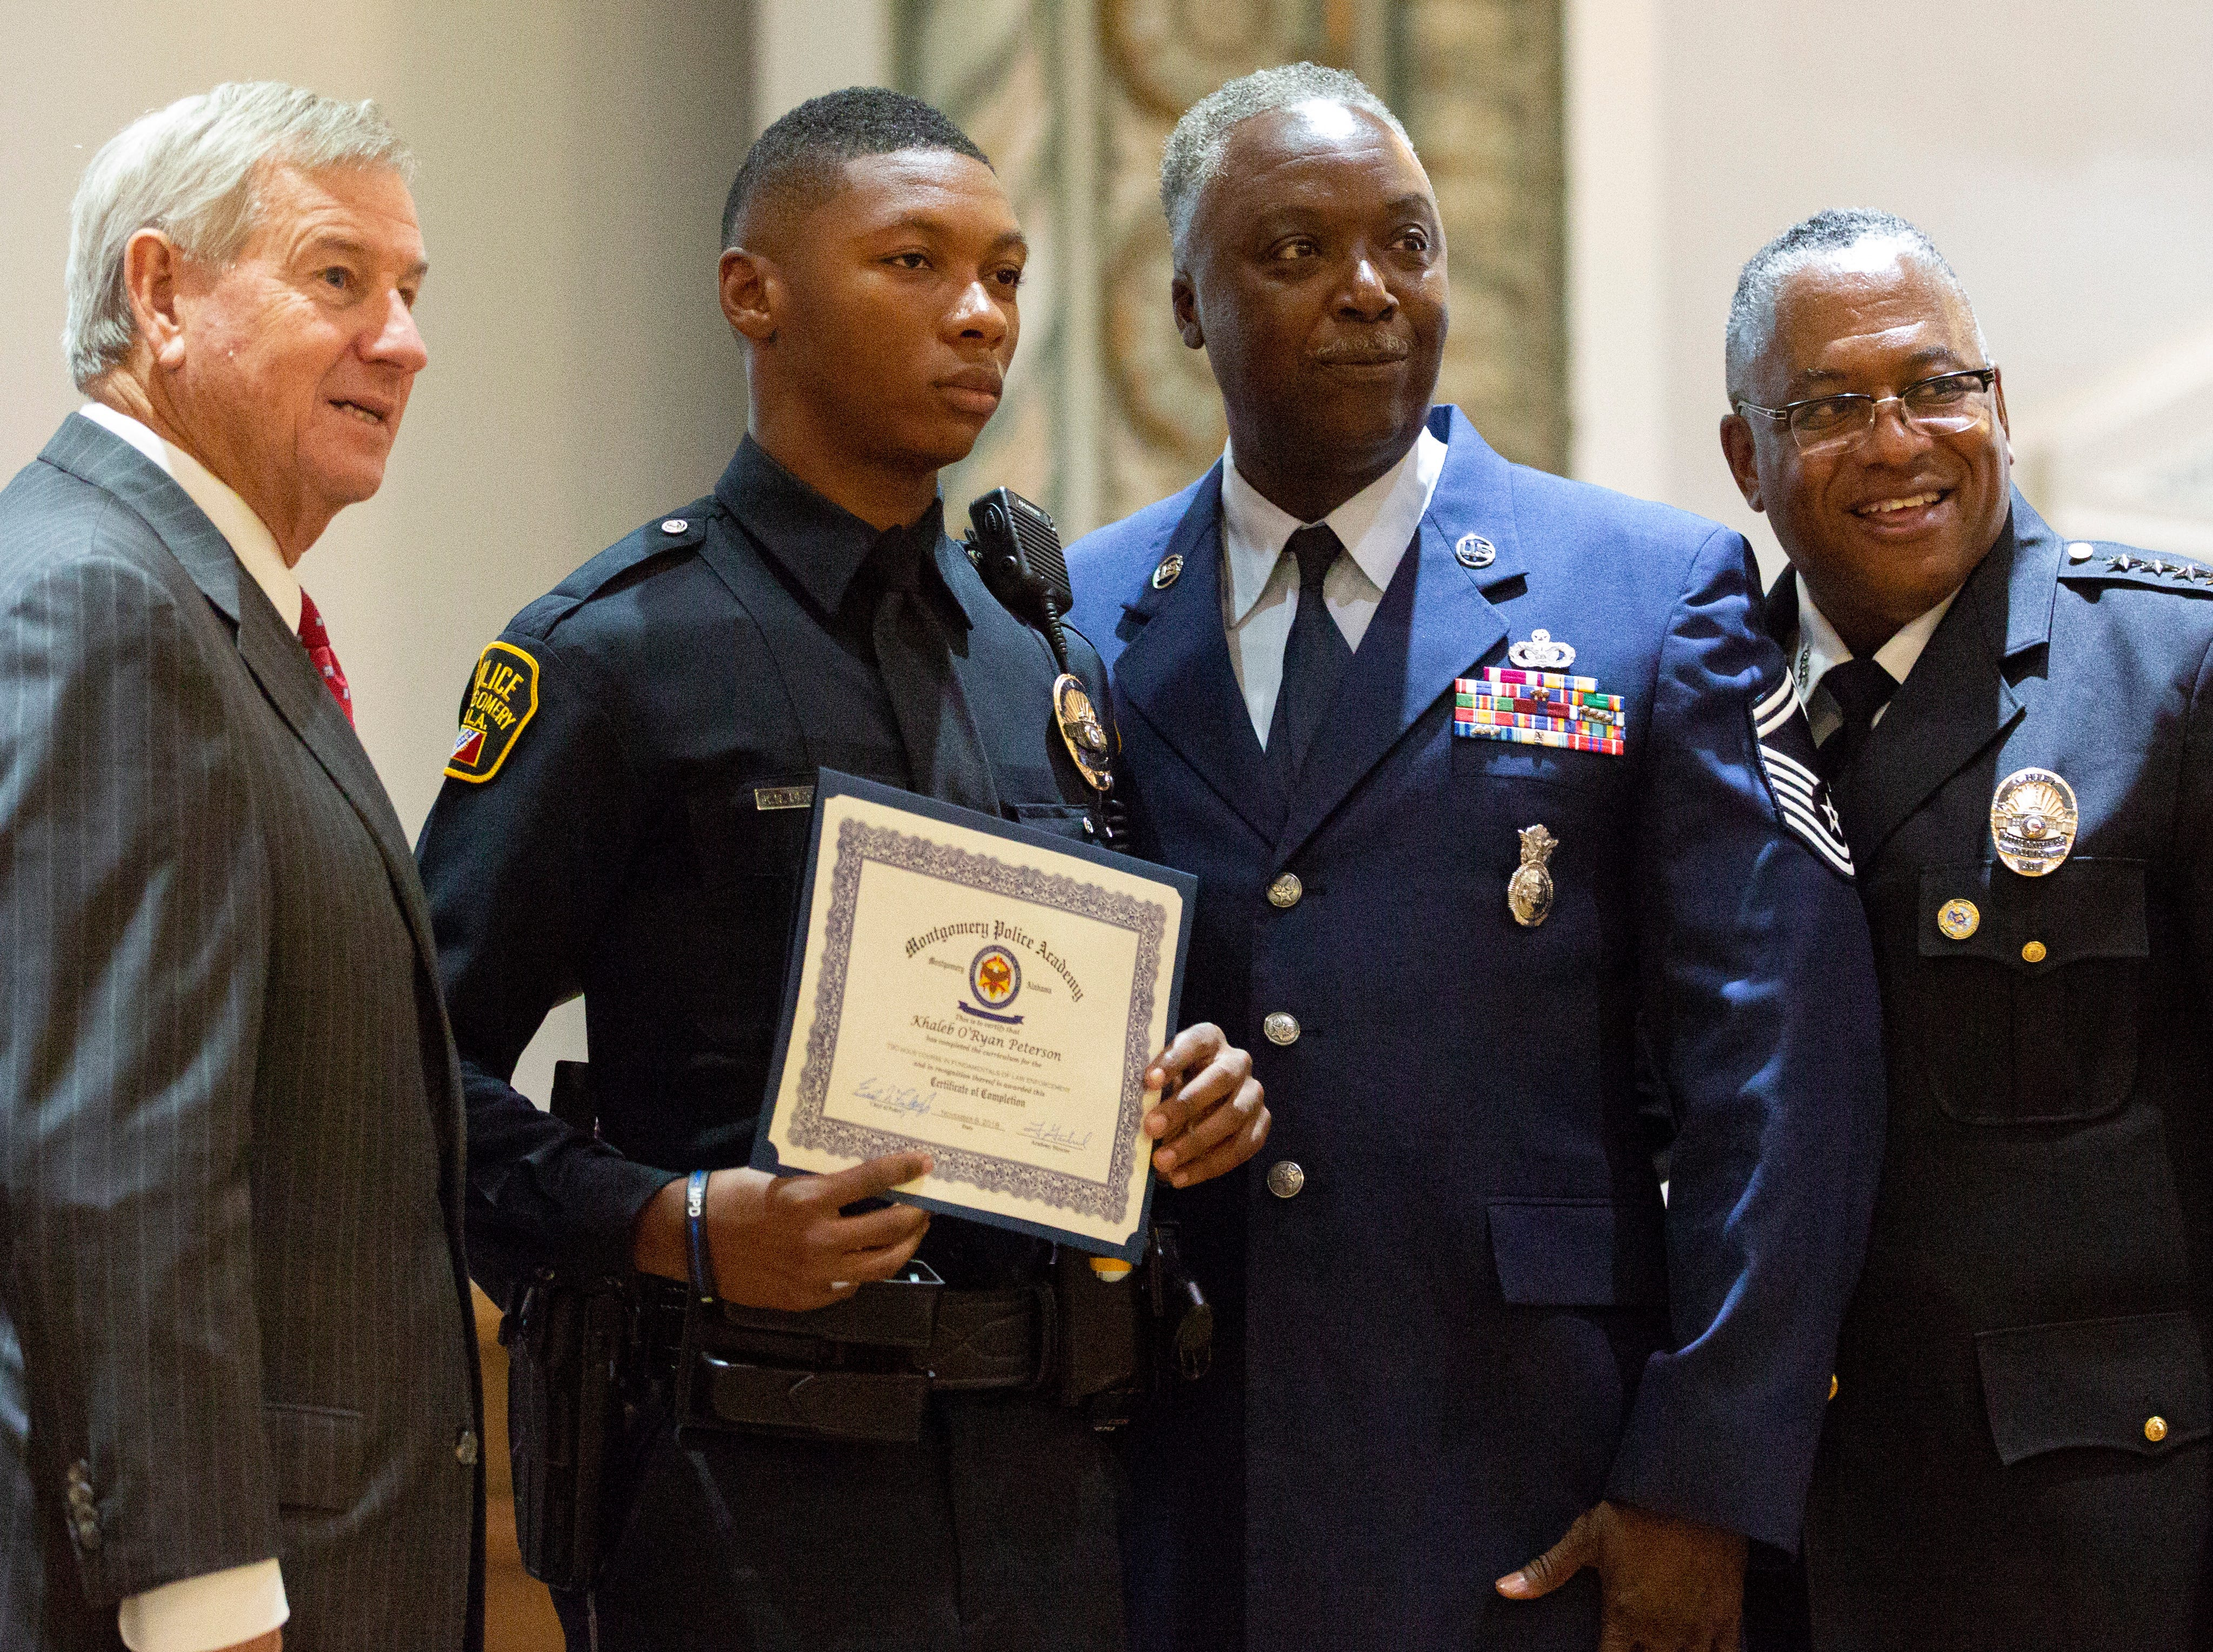 Montgomery police officer Khaleb Peterson poses for a photo after graduating from the academy.